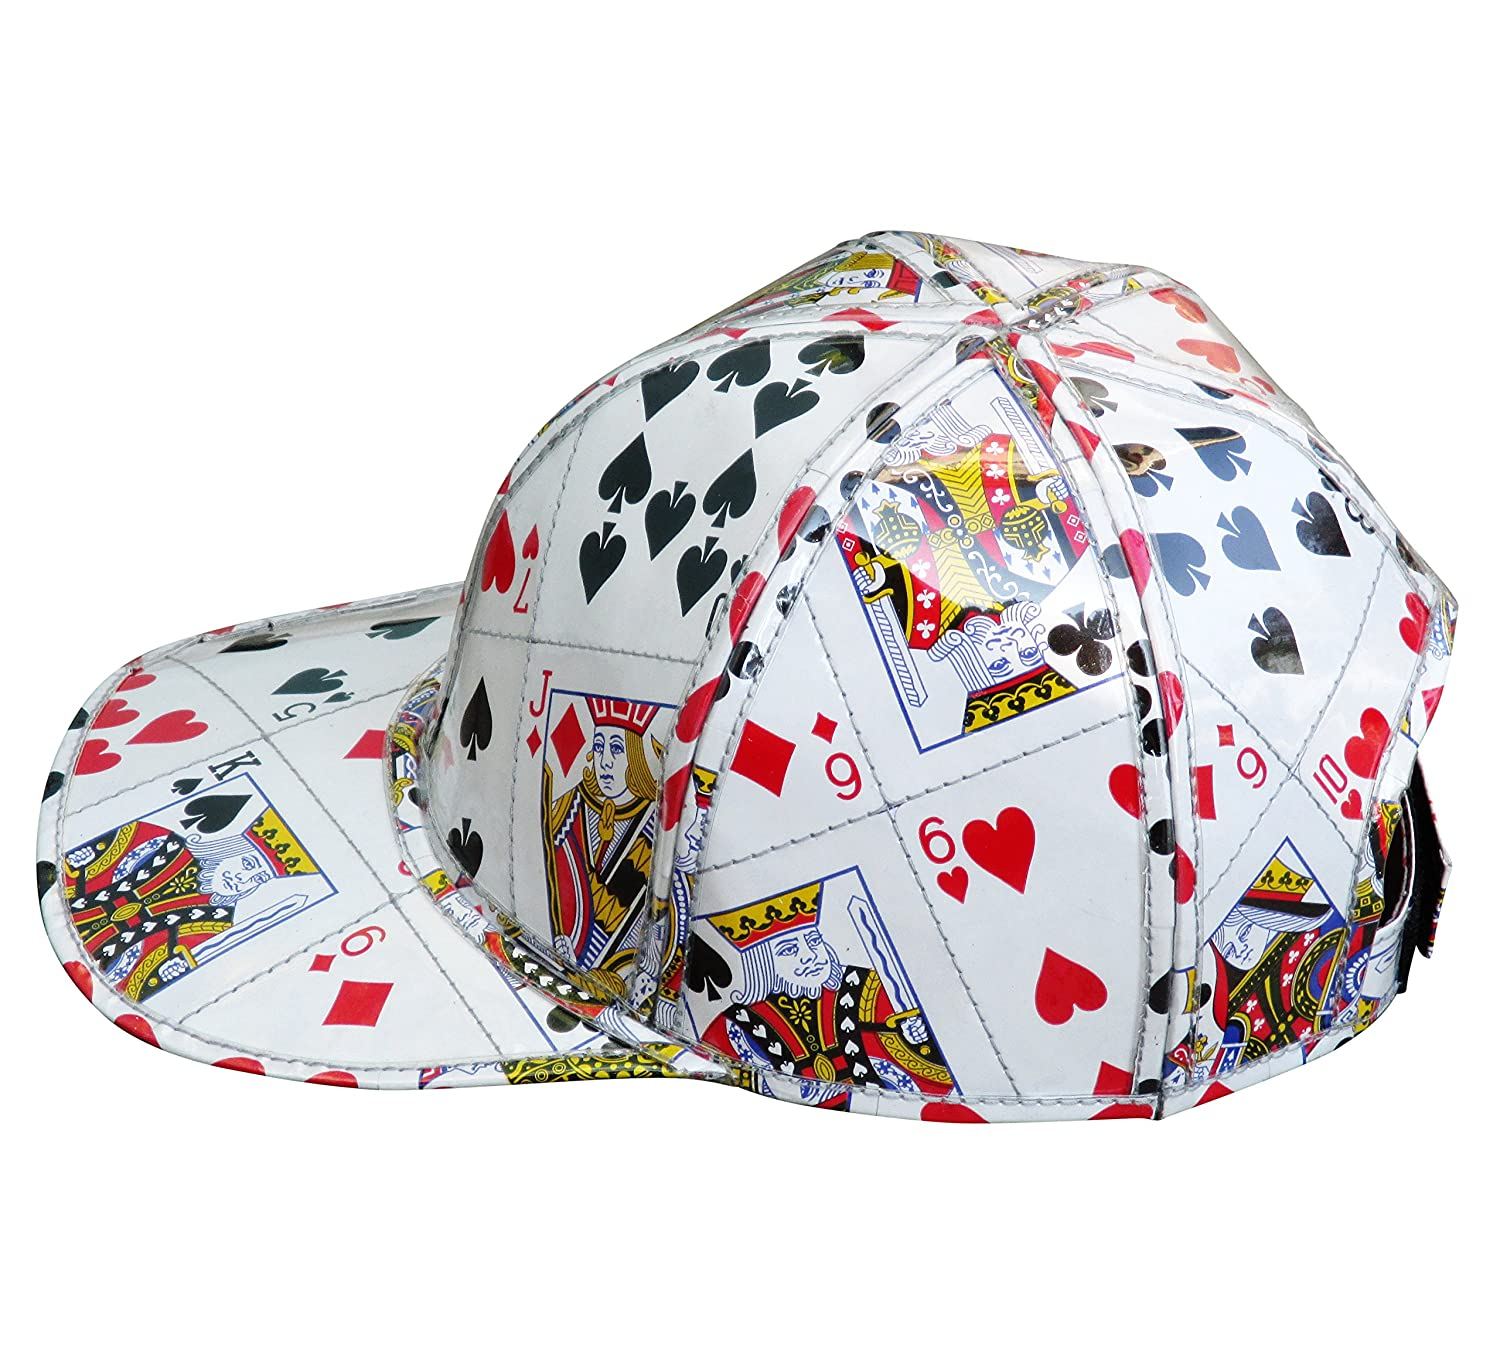 Cap hat made from playing cards - FREE SHIPPING, las vegas casino poker bridge player play card upcycled upcycle up-cycled recycled different smart person vegetarians products magician magicians